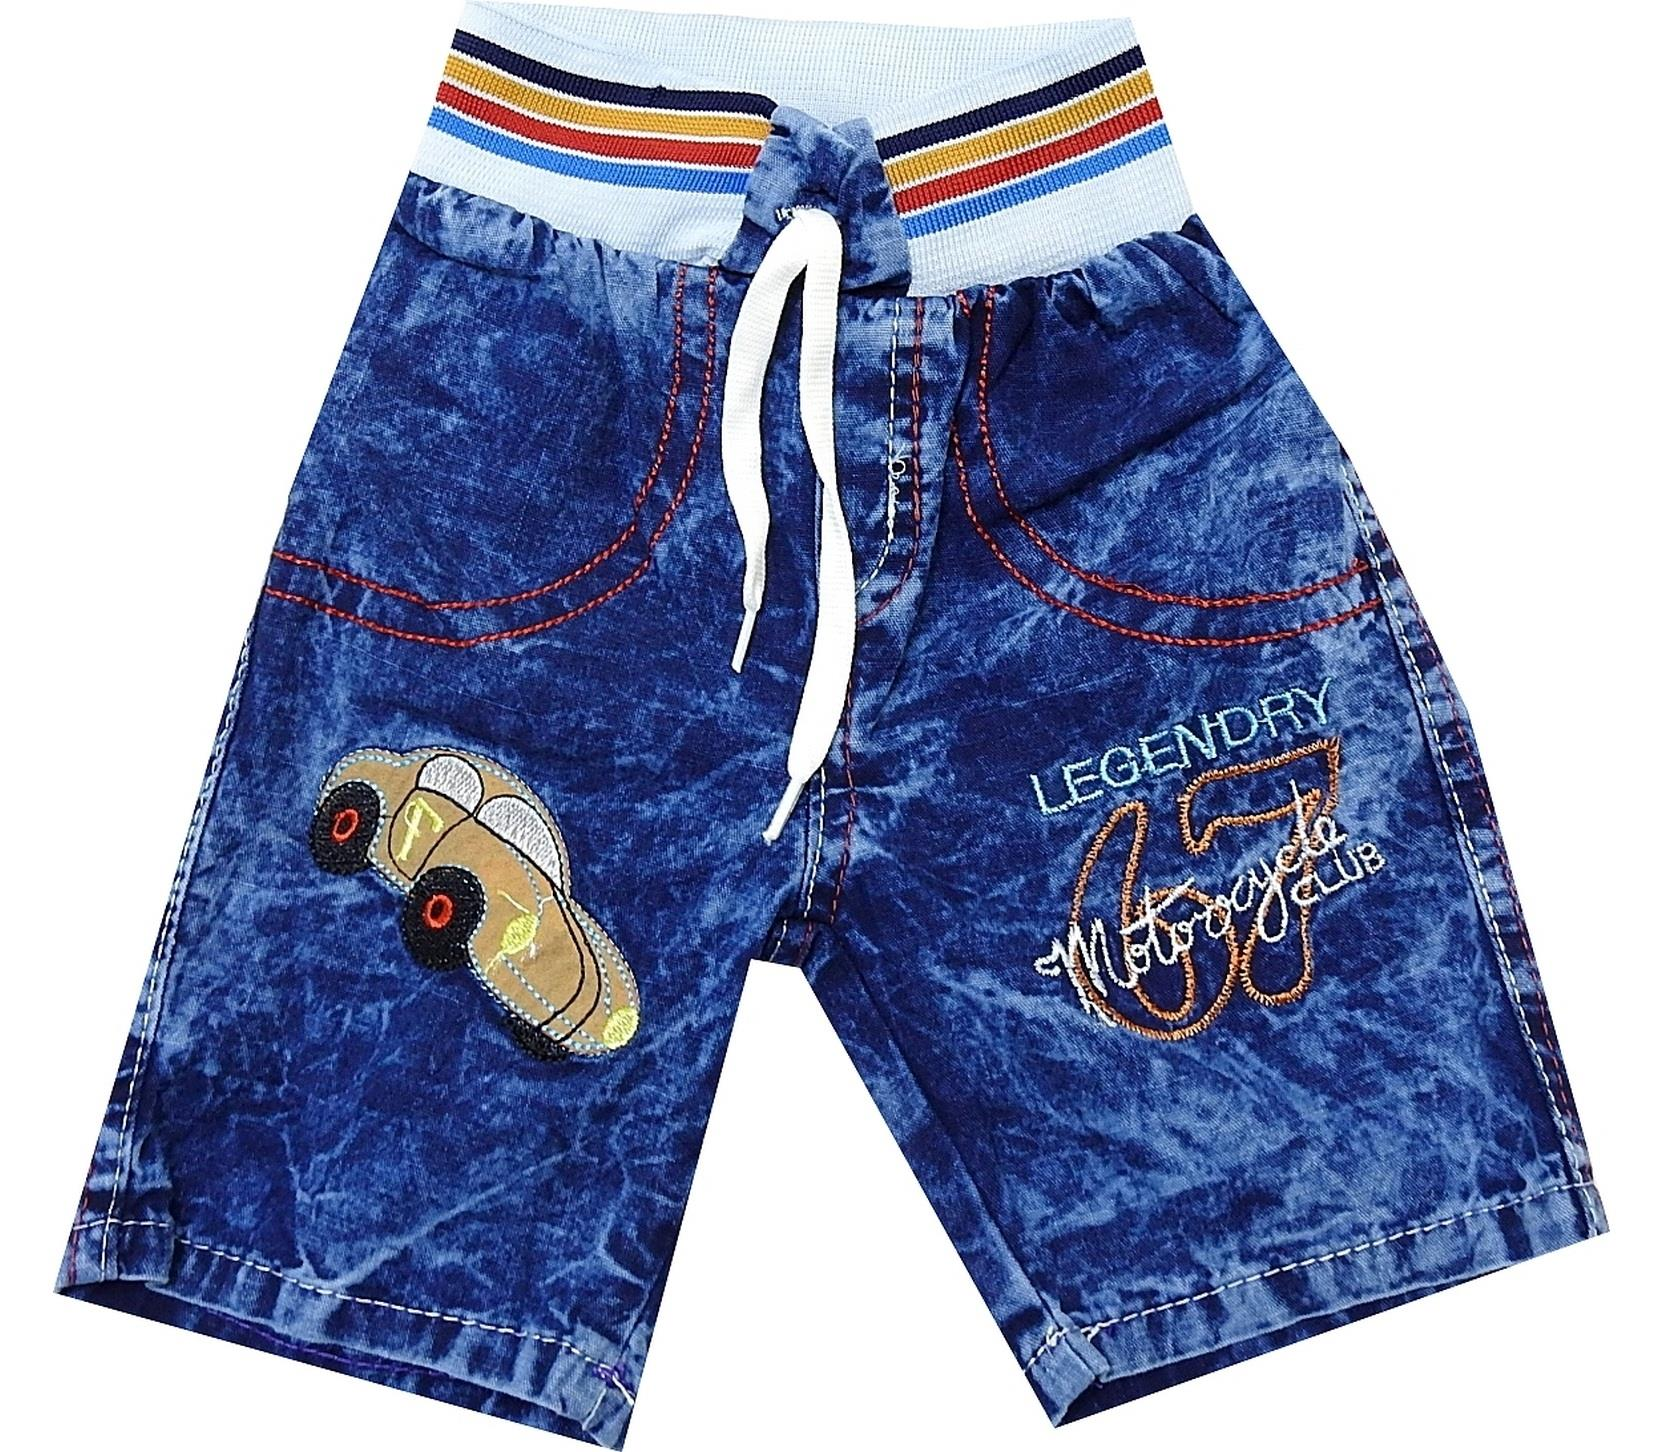 CAR PRINTED DESIGN JEANS SHORT FOR BOY (4-5-6-7 AGE)